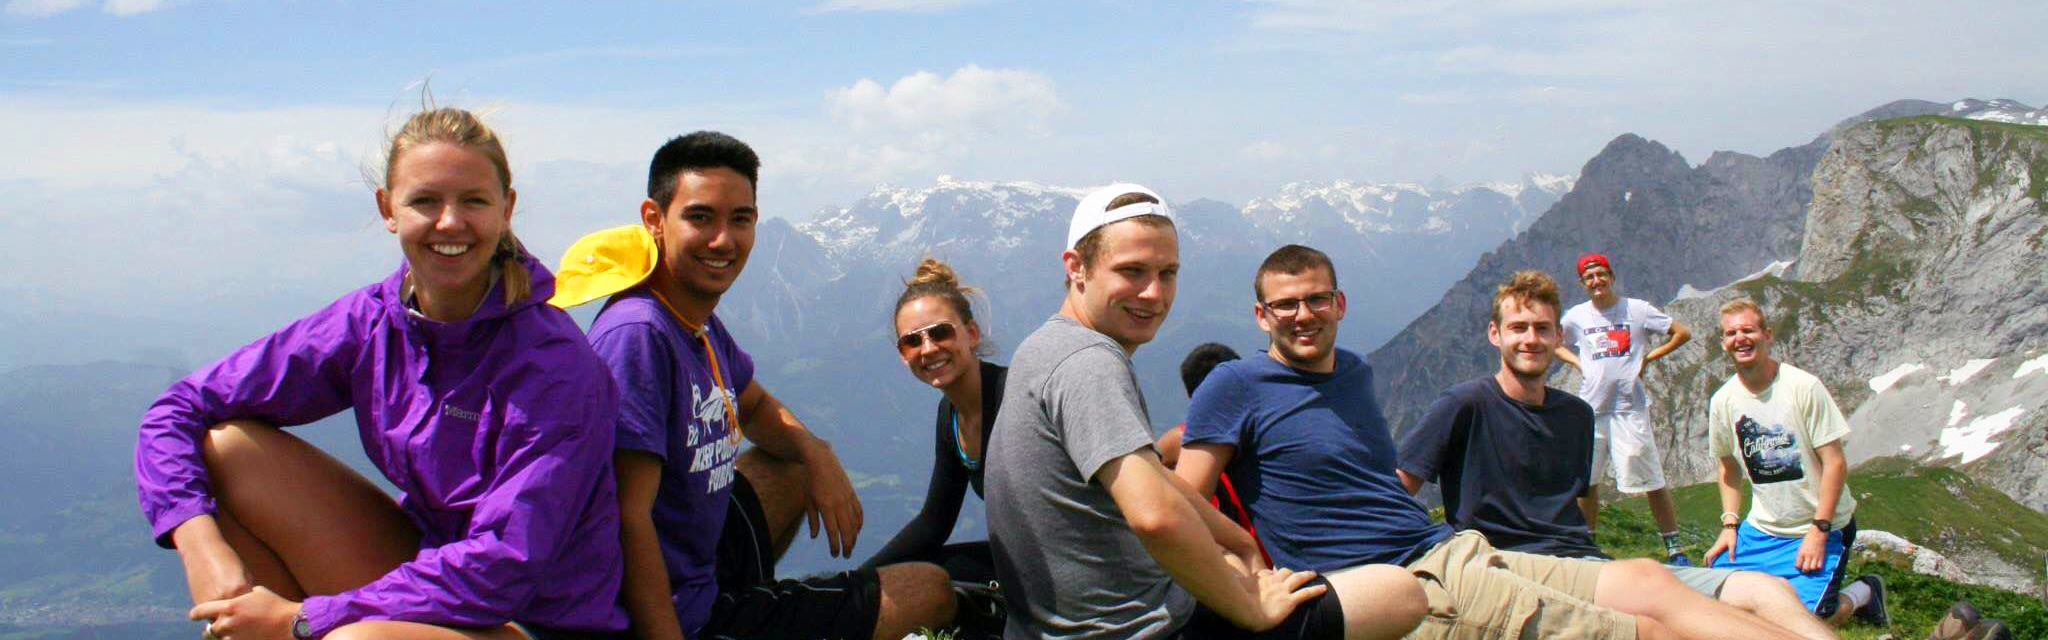 Study Abroad Fees—How to Understand What's Included